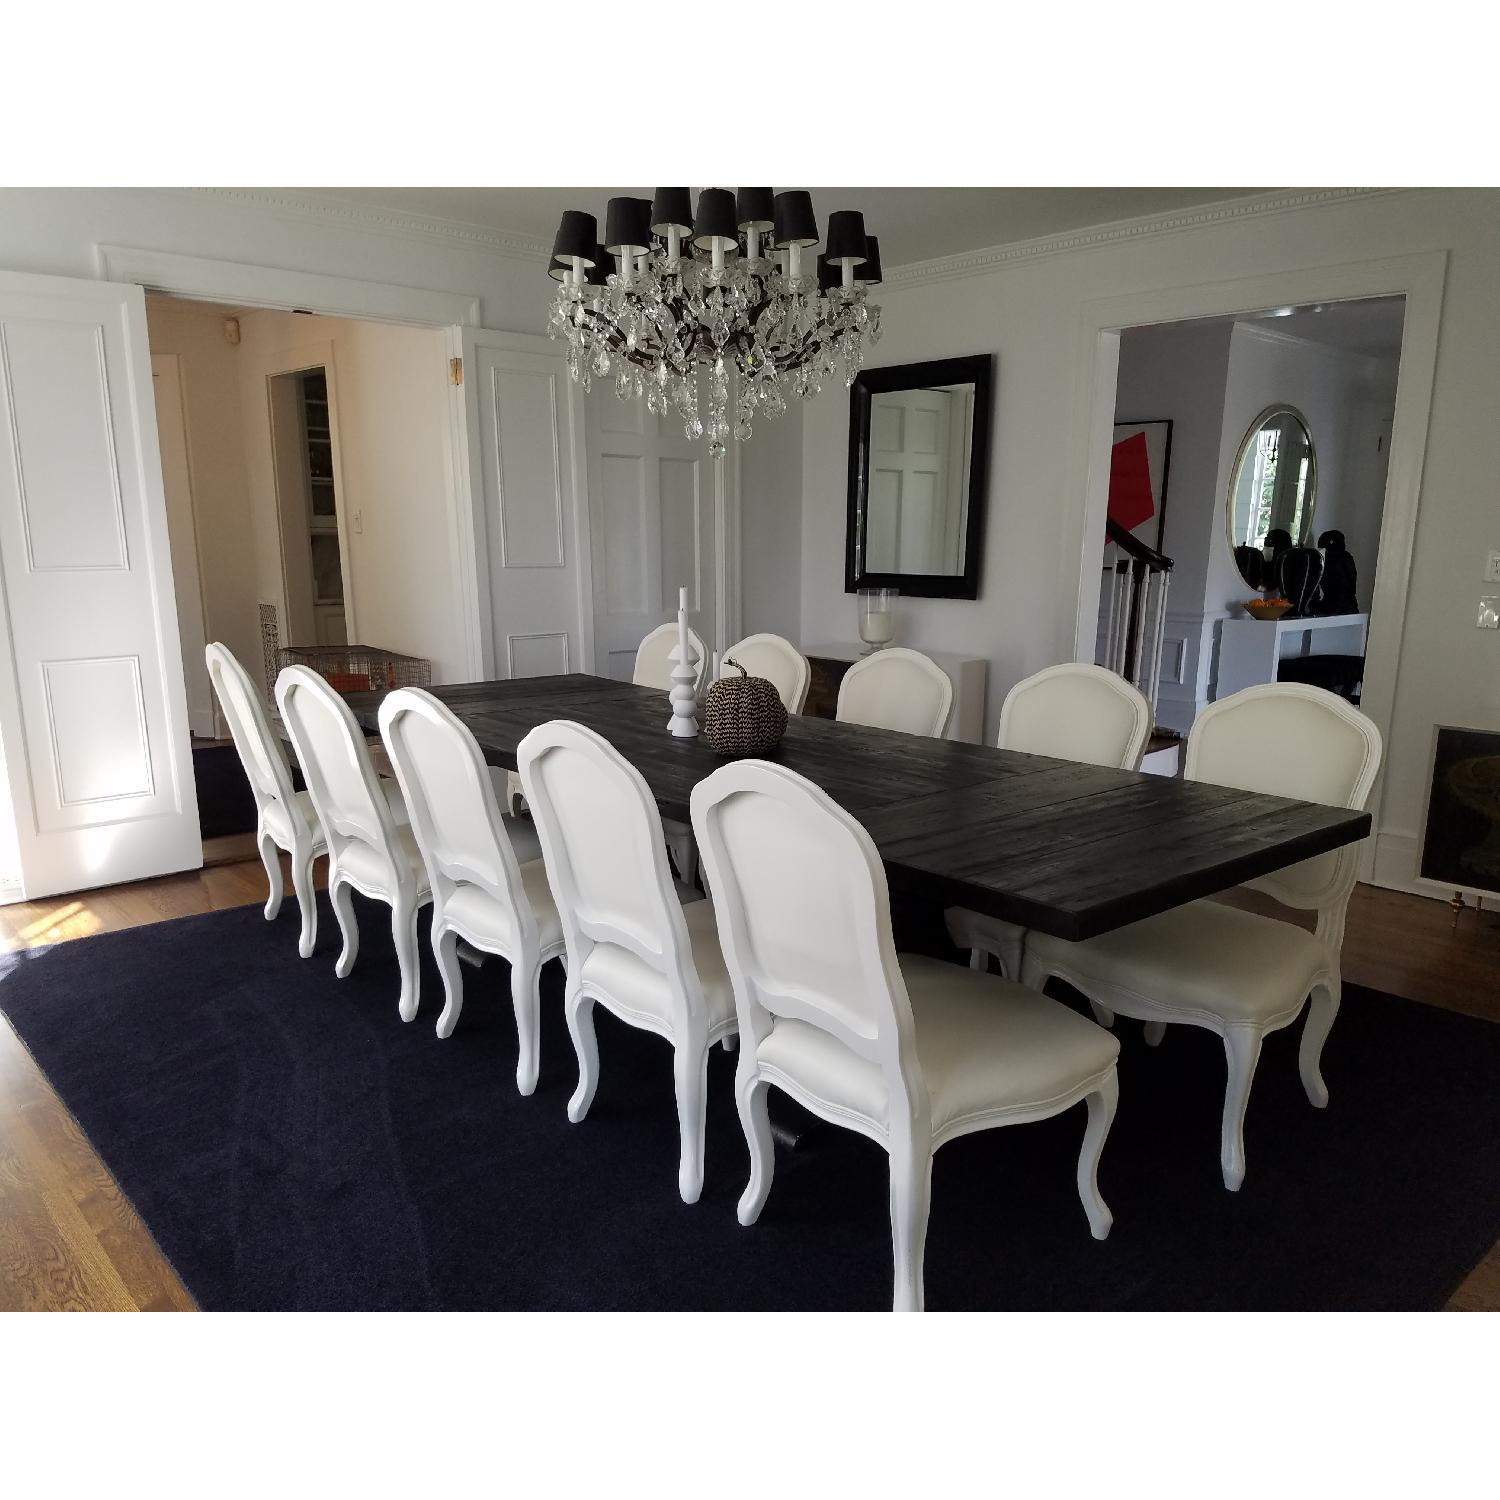 Restoration Hardware Dining Table w/ 10 Chairs - image-1